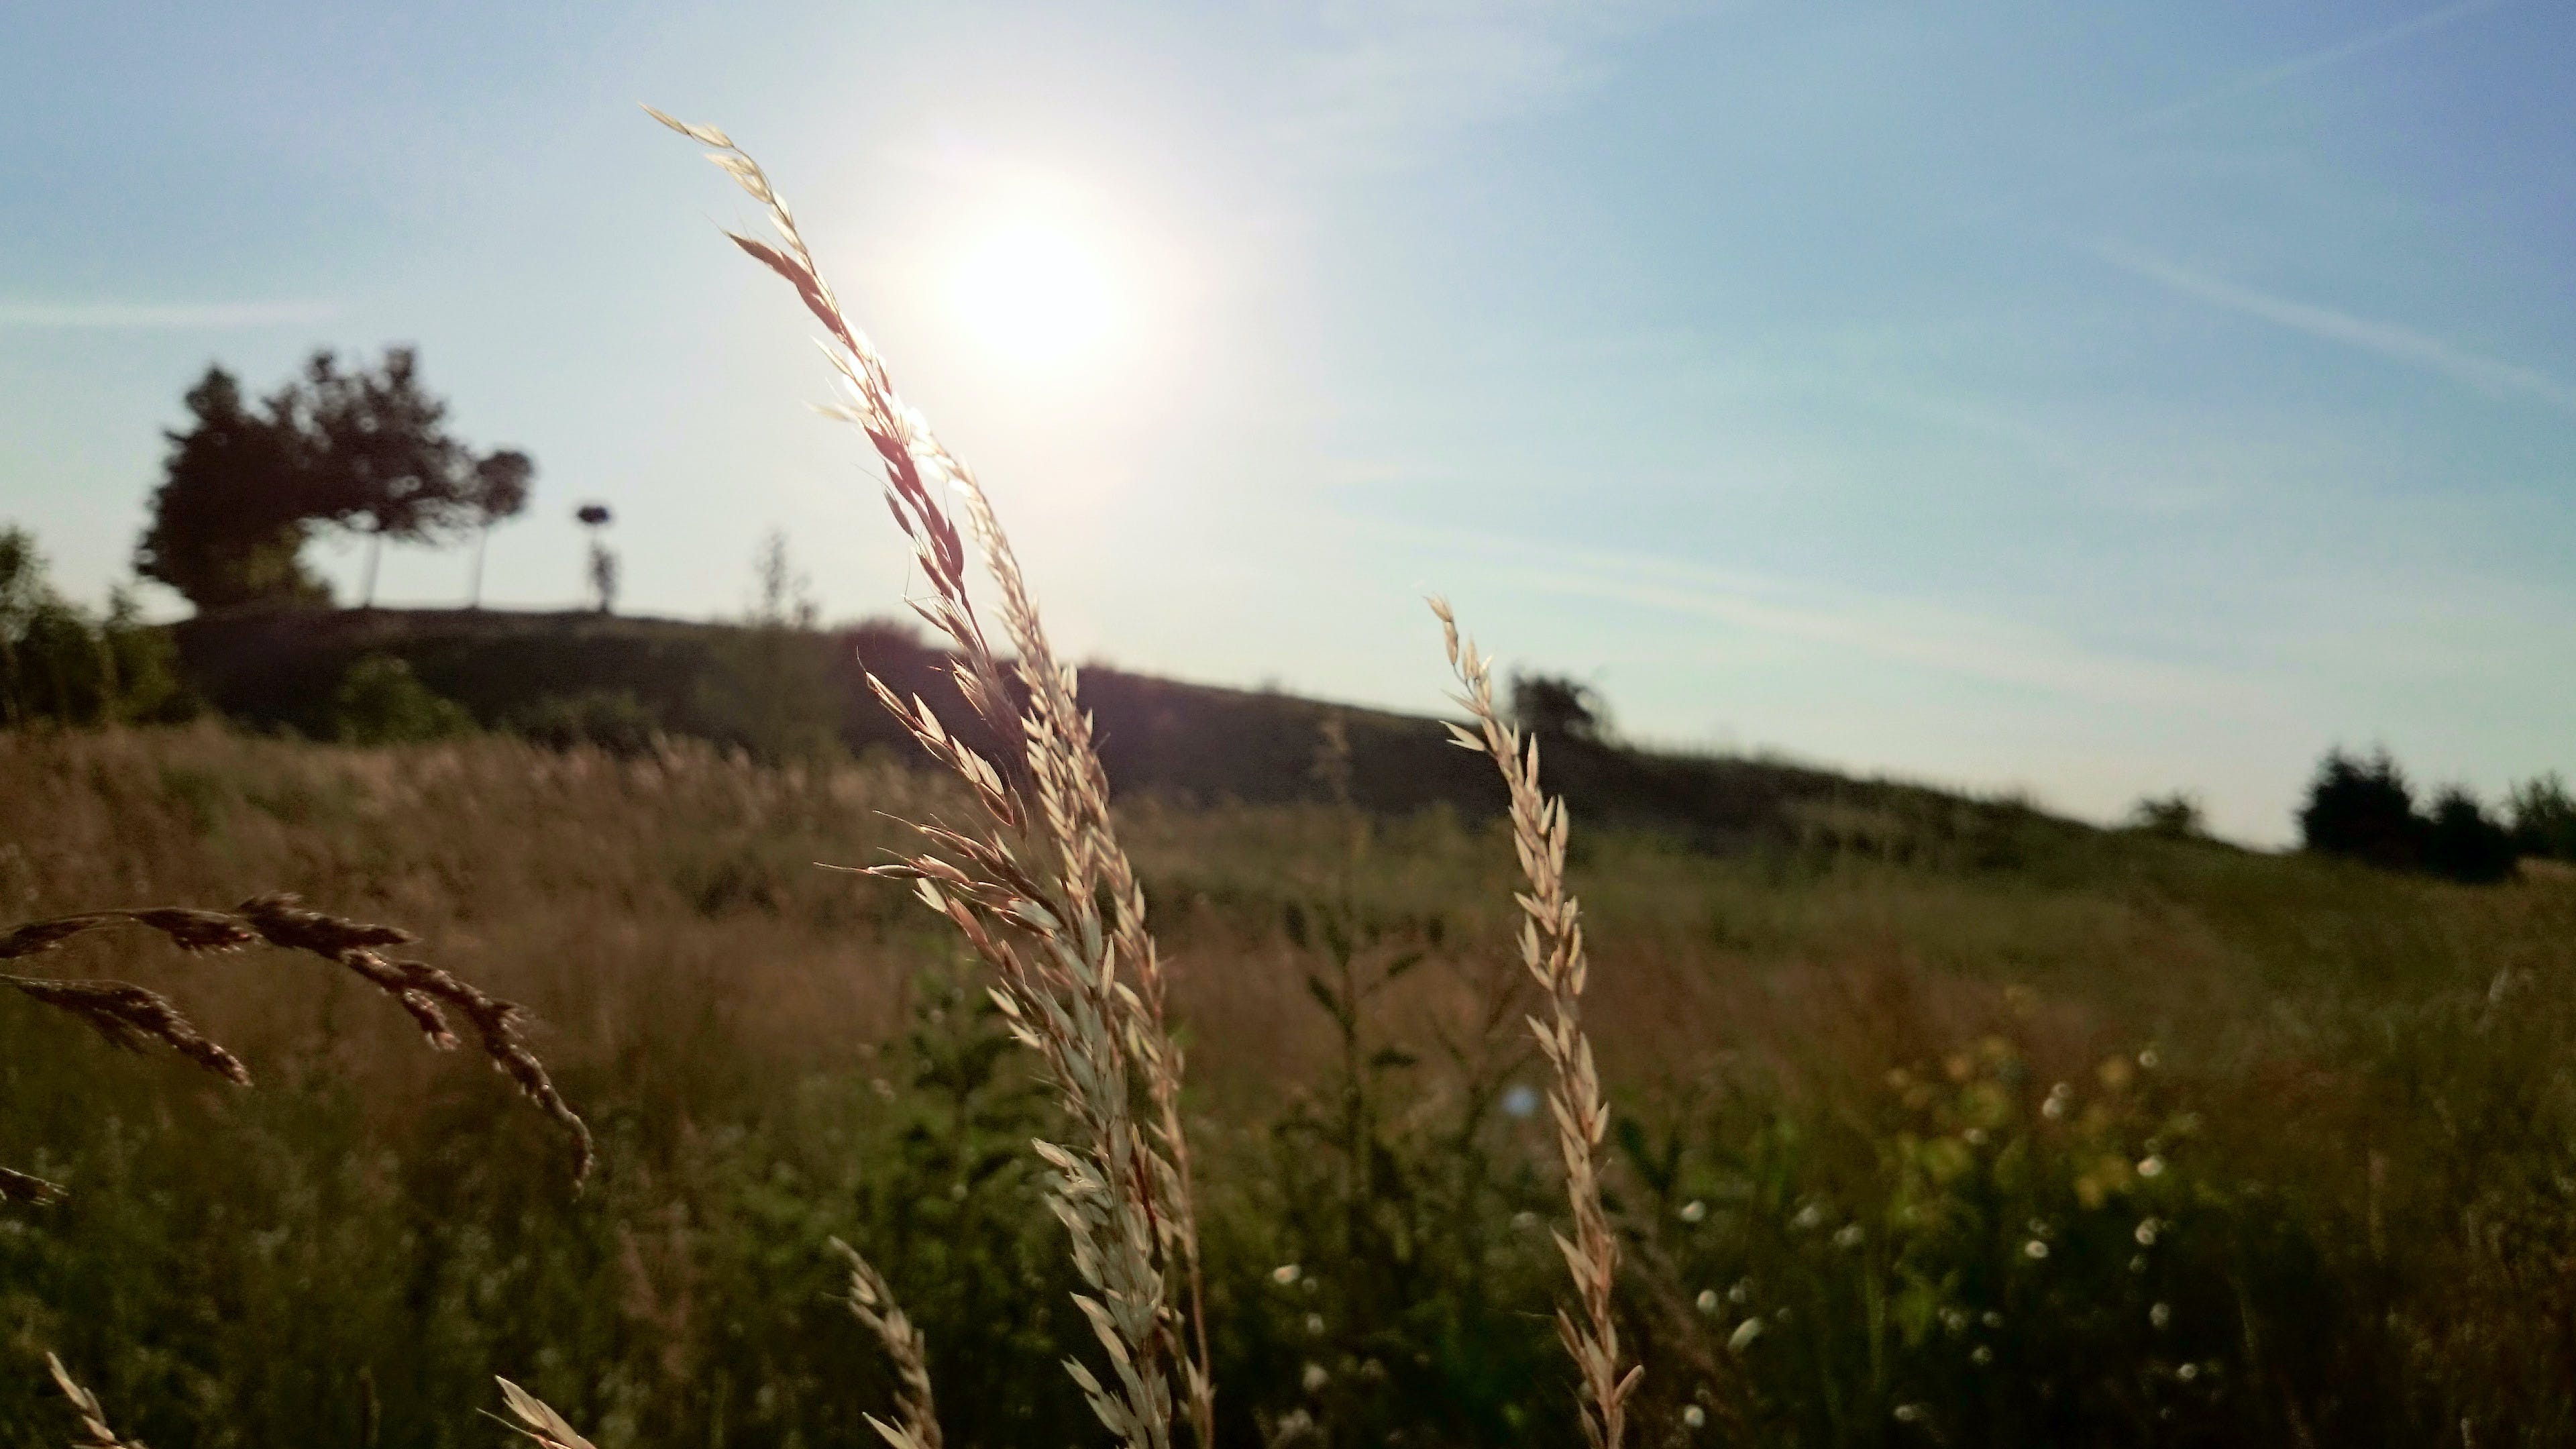 Free stock photo of nature, field, sun, cereals